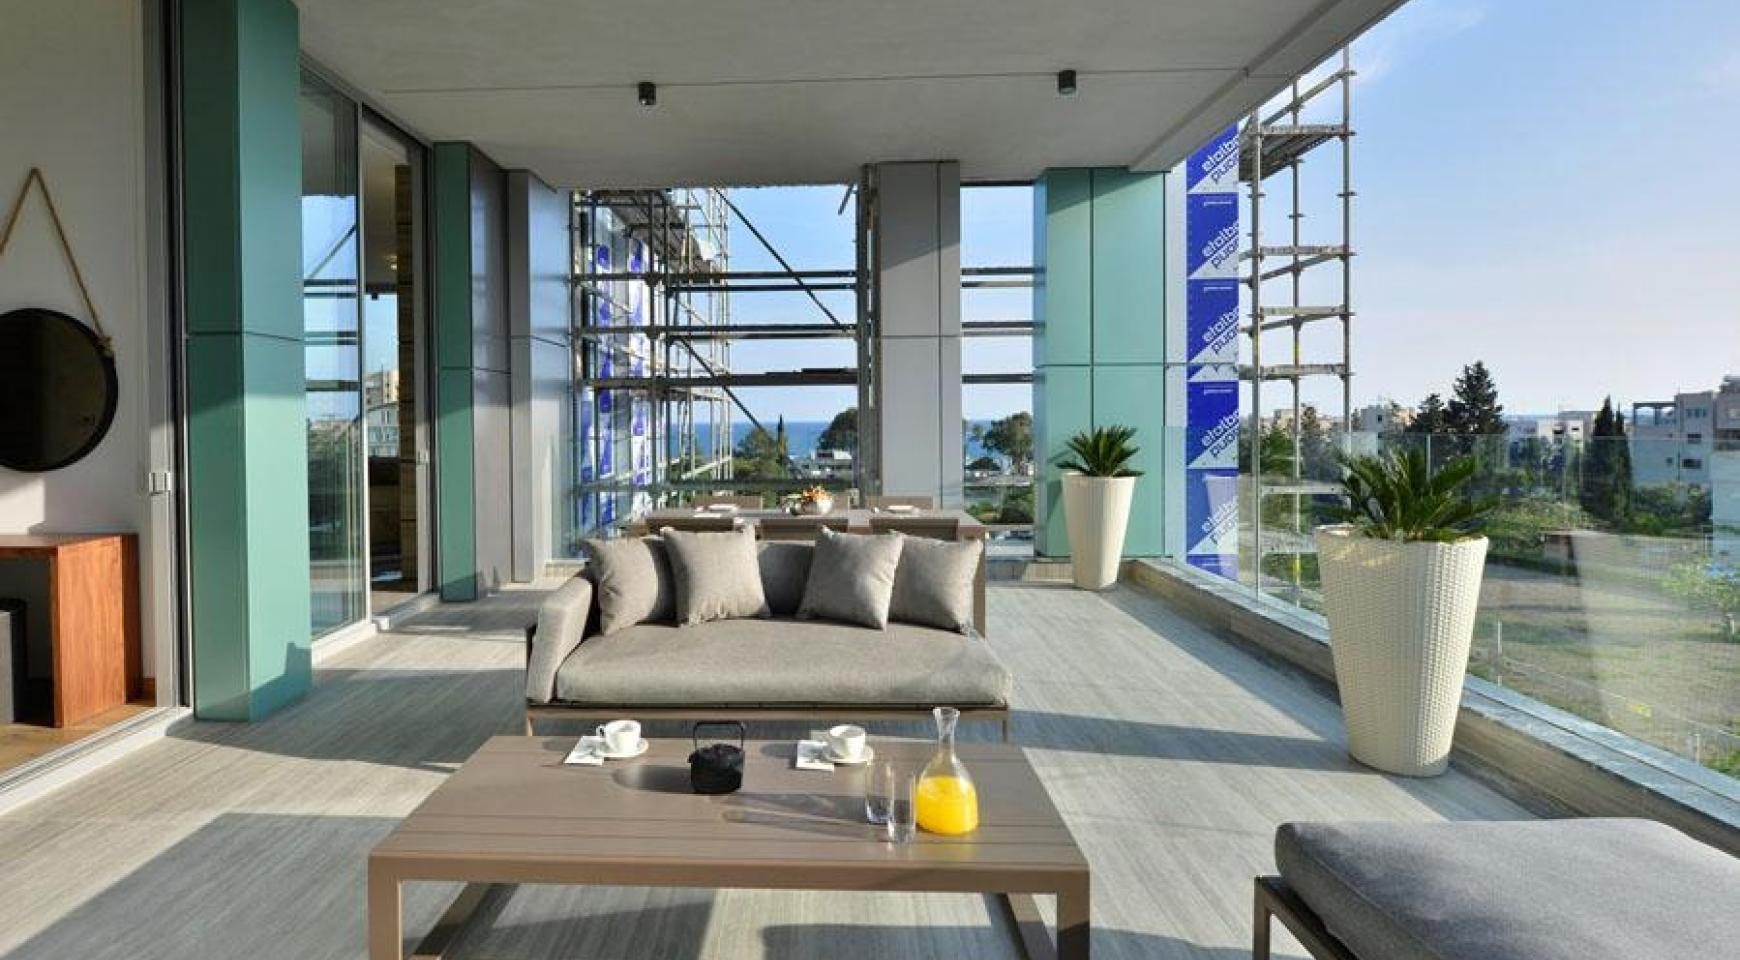 3 Bedroom Apartment with Roof Garden within a New Complex - 12